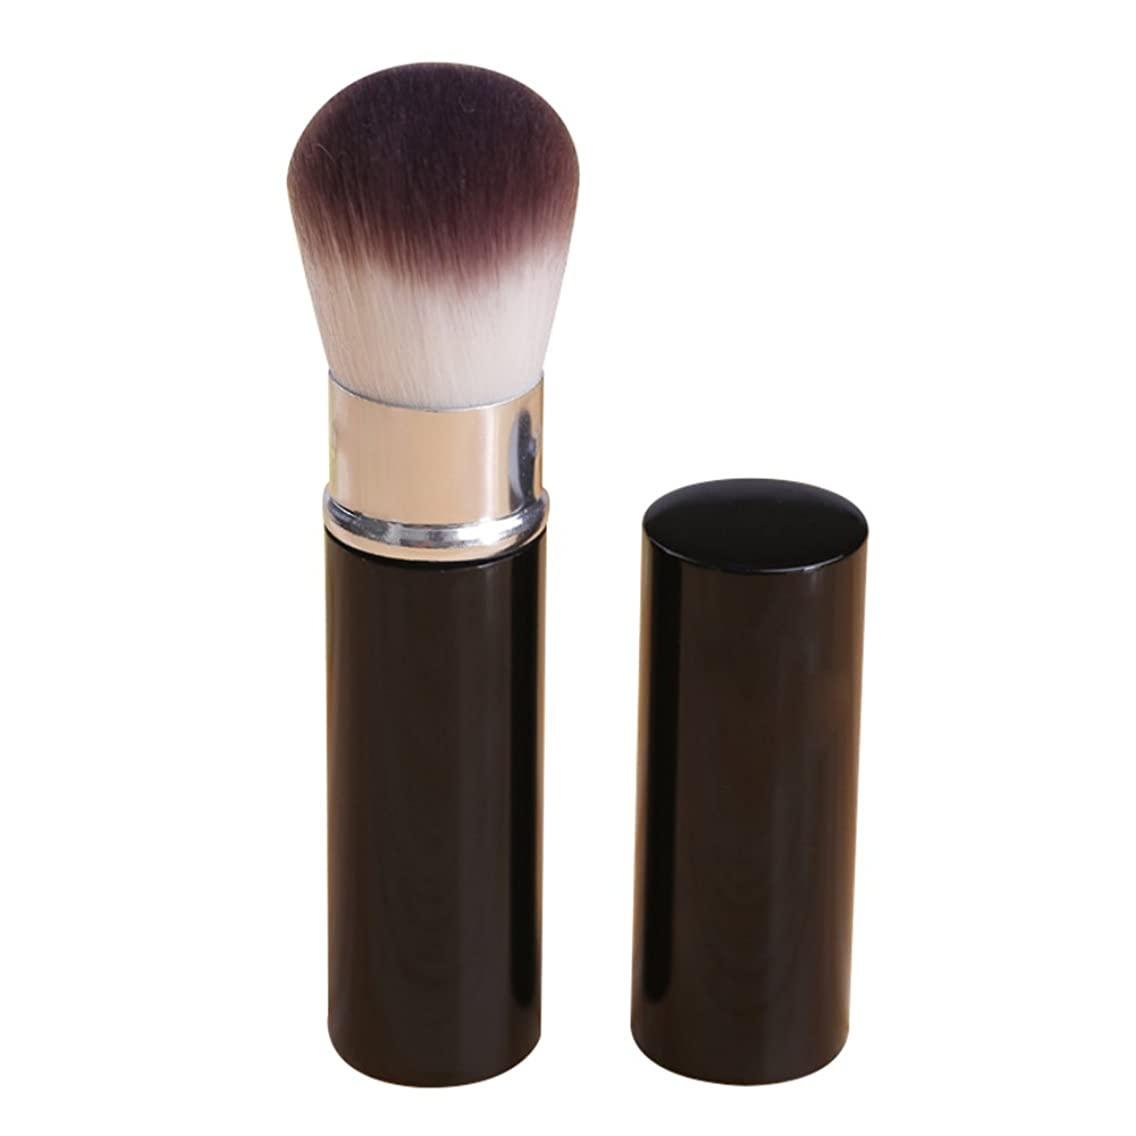 Whthteey Portable Foundation Brush Retractable Face Powder Brush with Lid